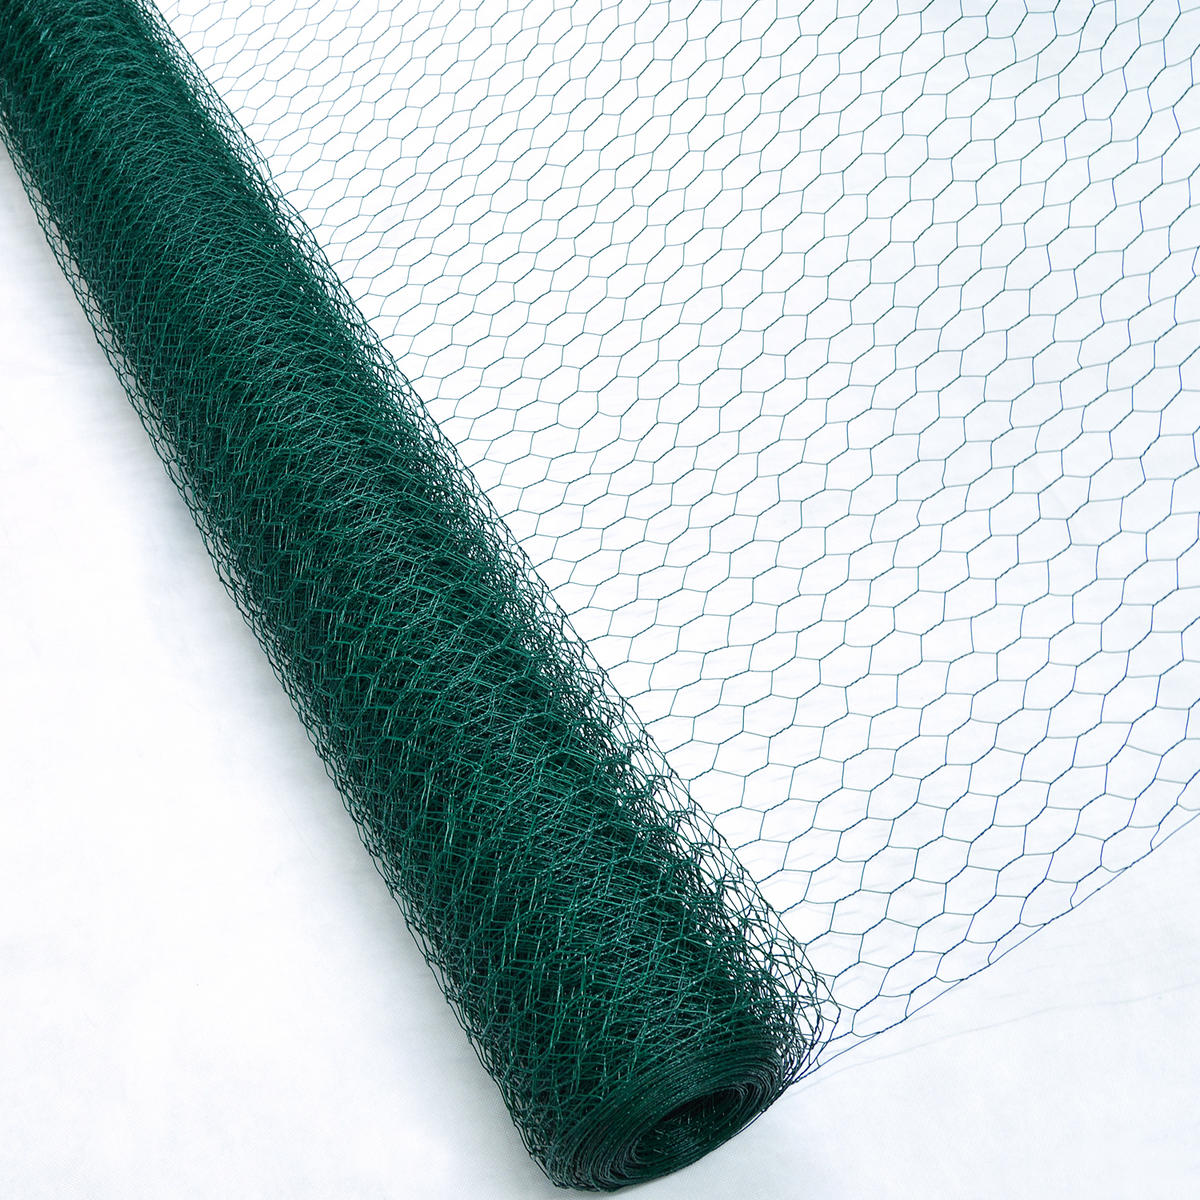 Woodside Pvc Coated Chicken Wire Fencing True North